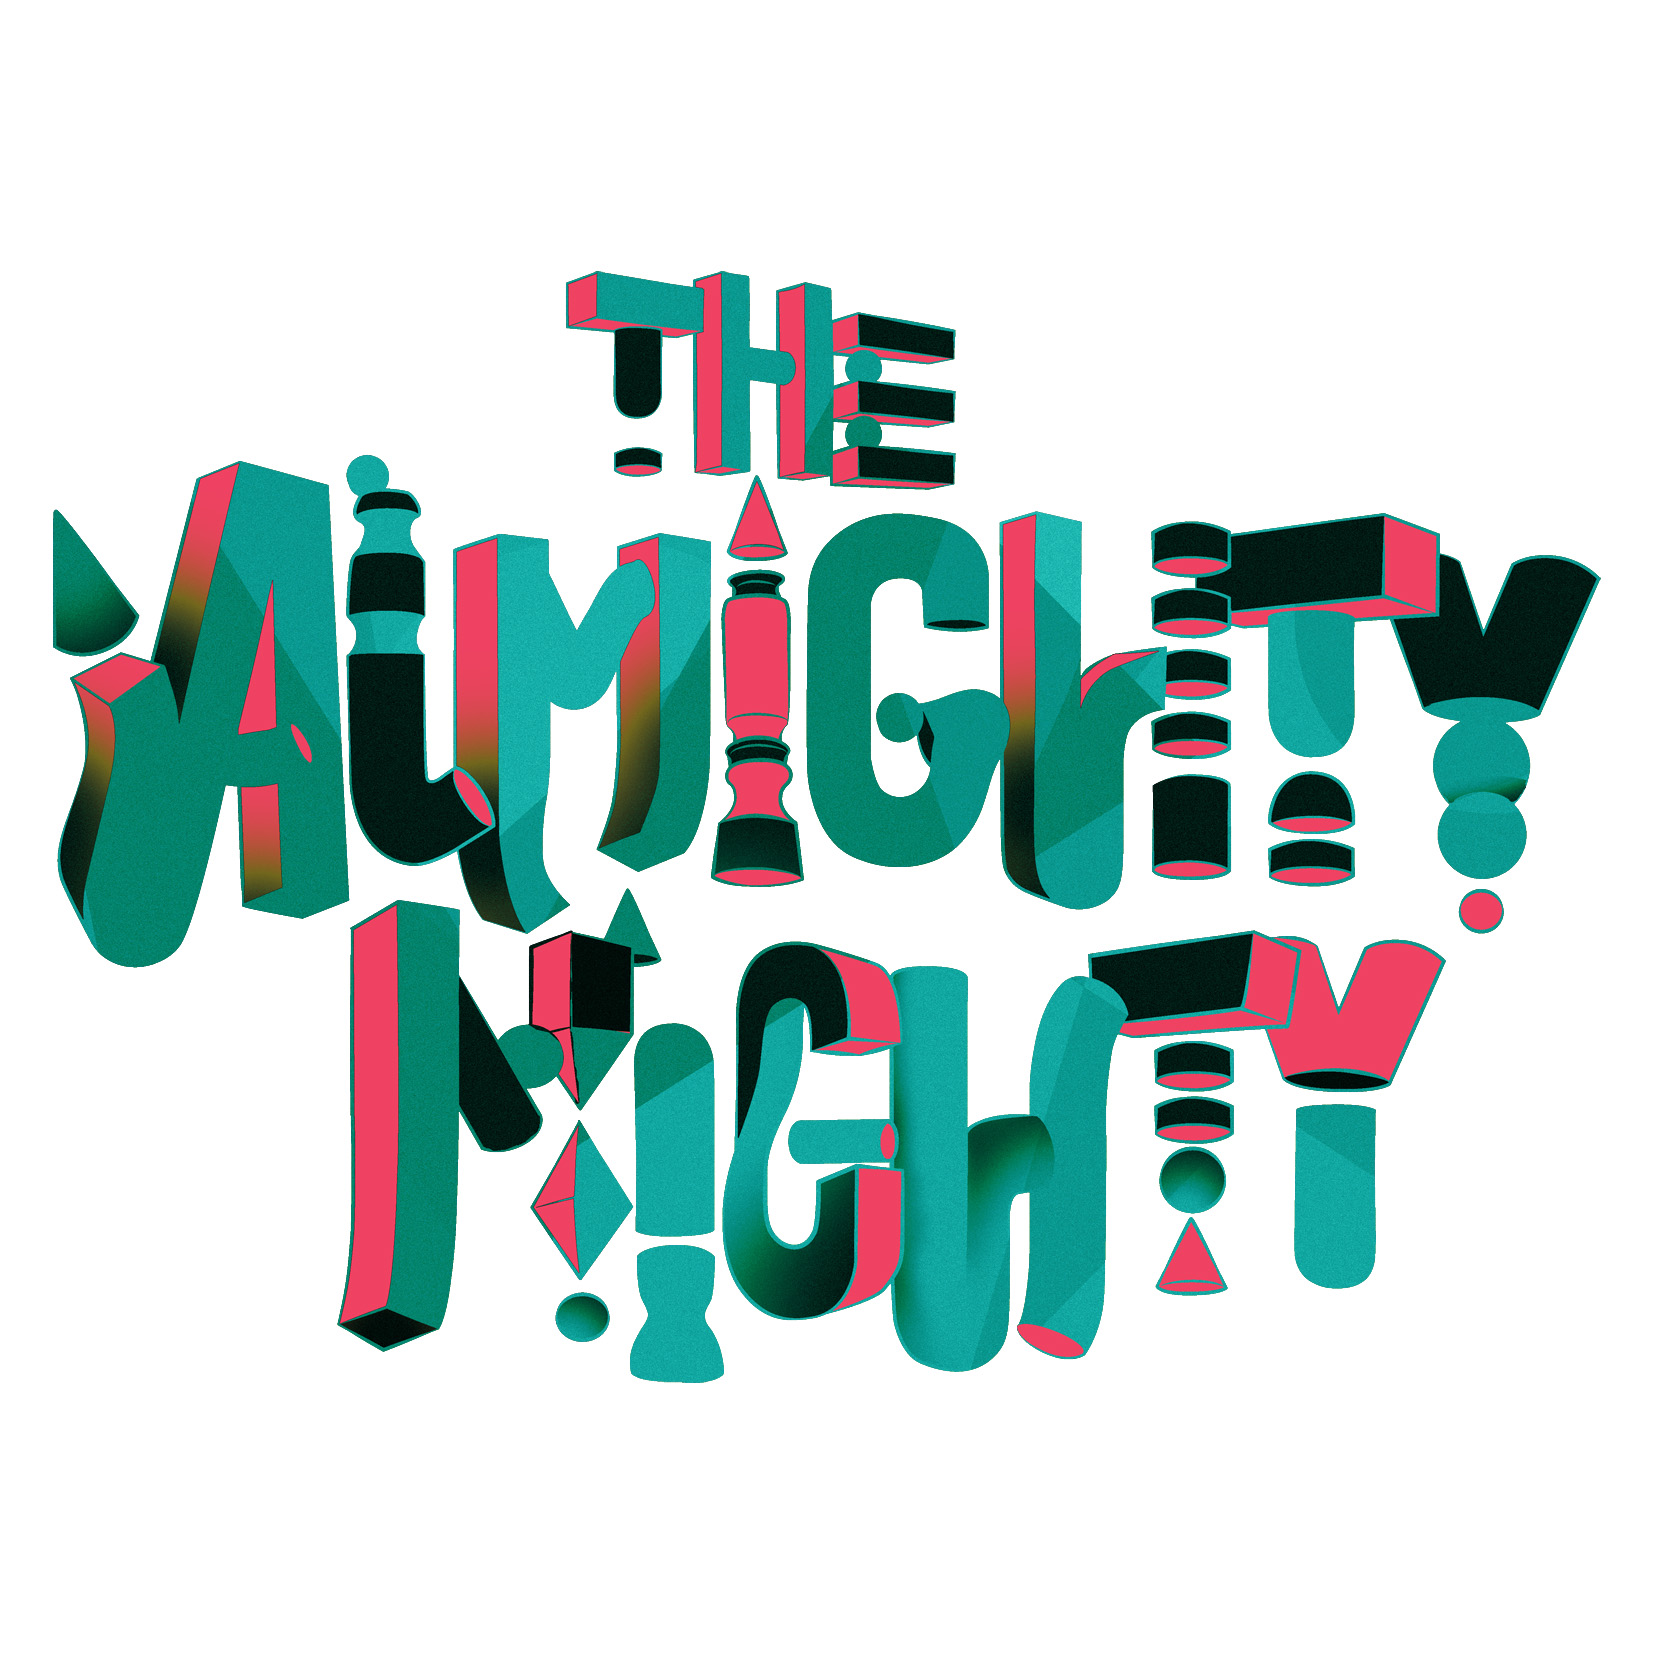 The Almighty Mighty